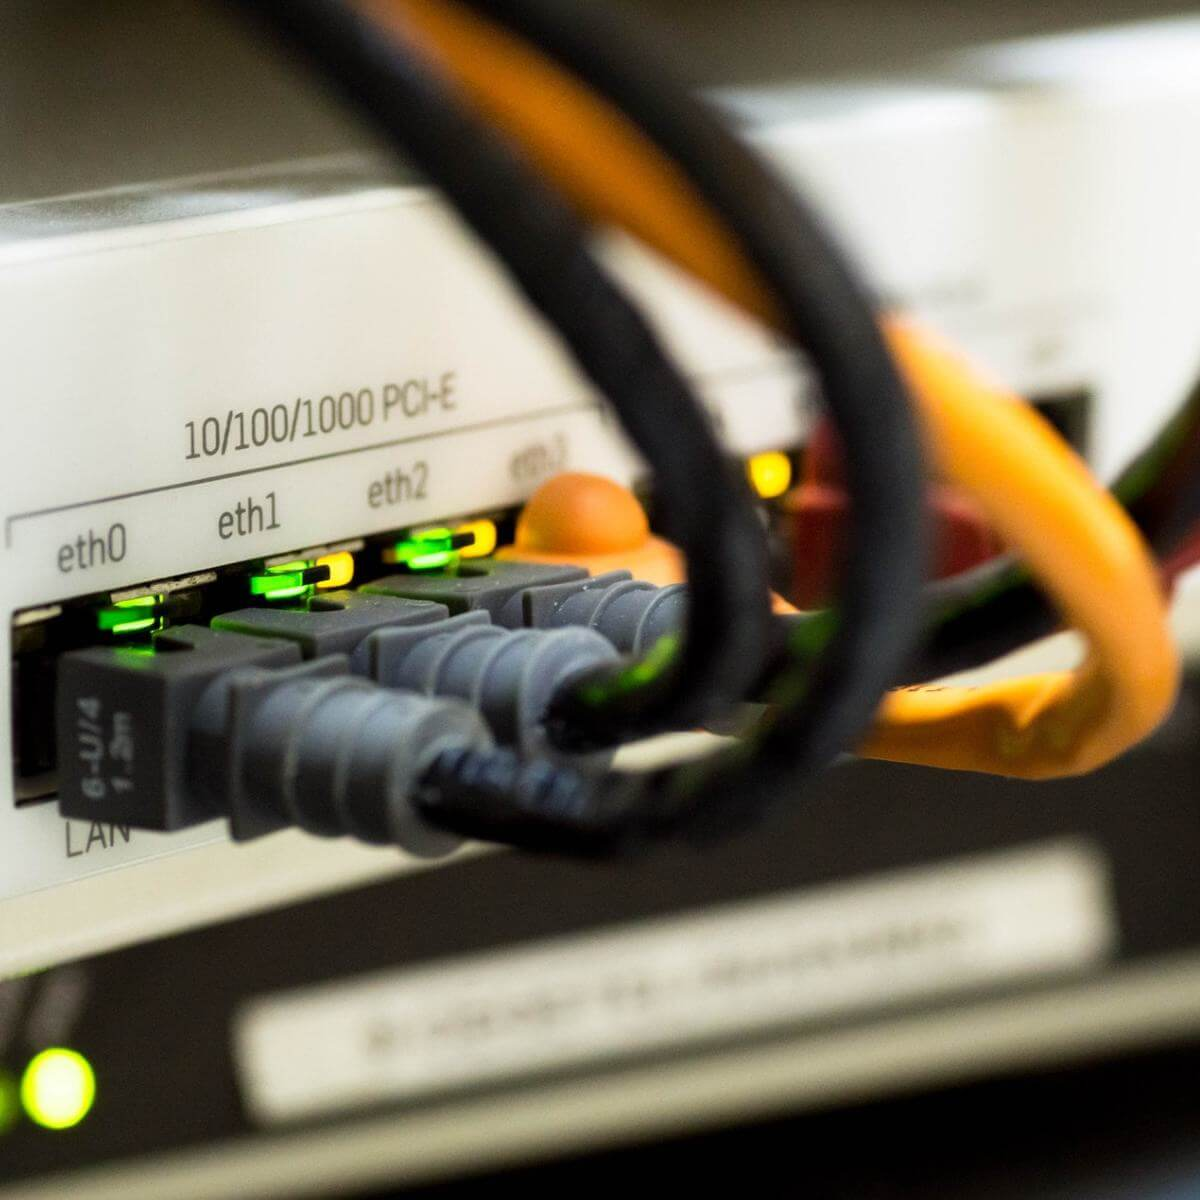 hight resolution of internet connection sharing error lan connection already configured